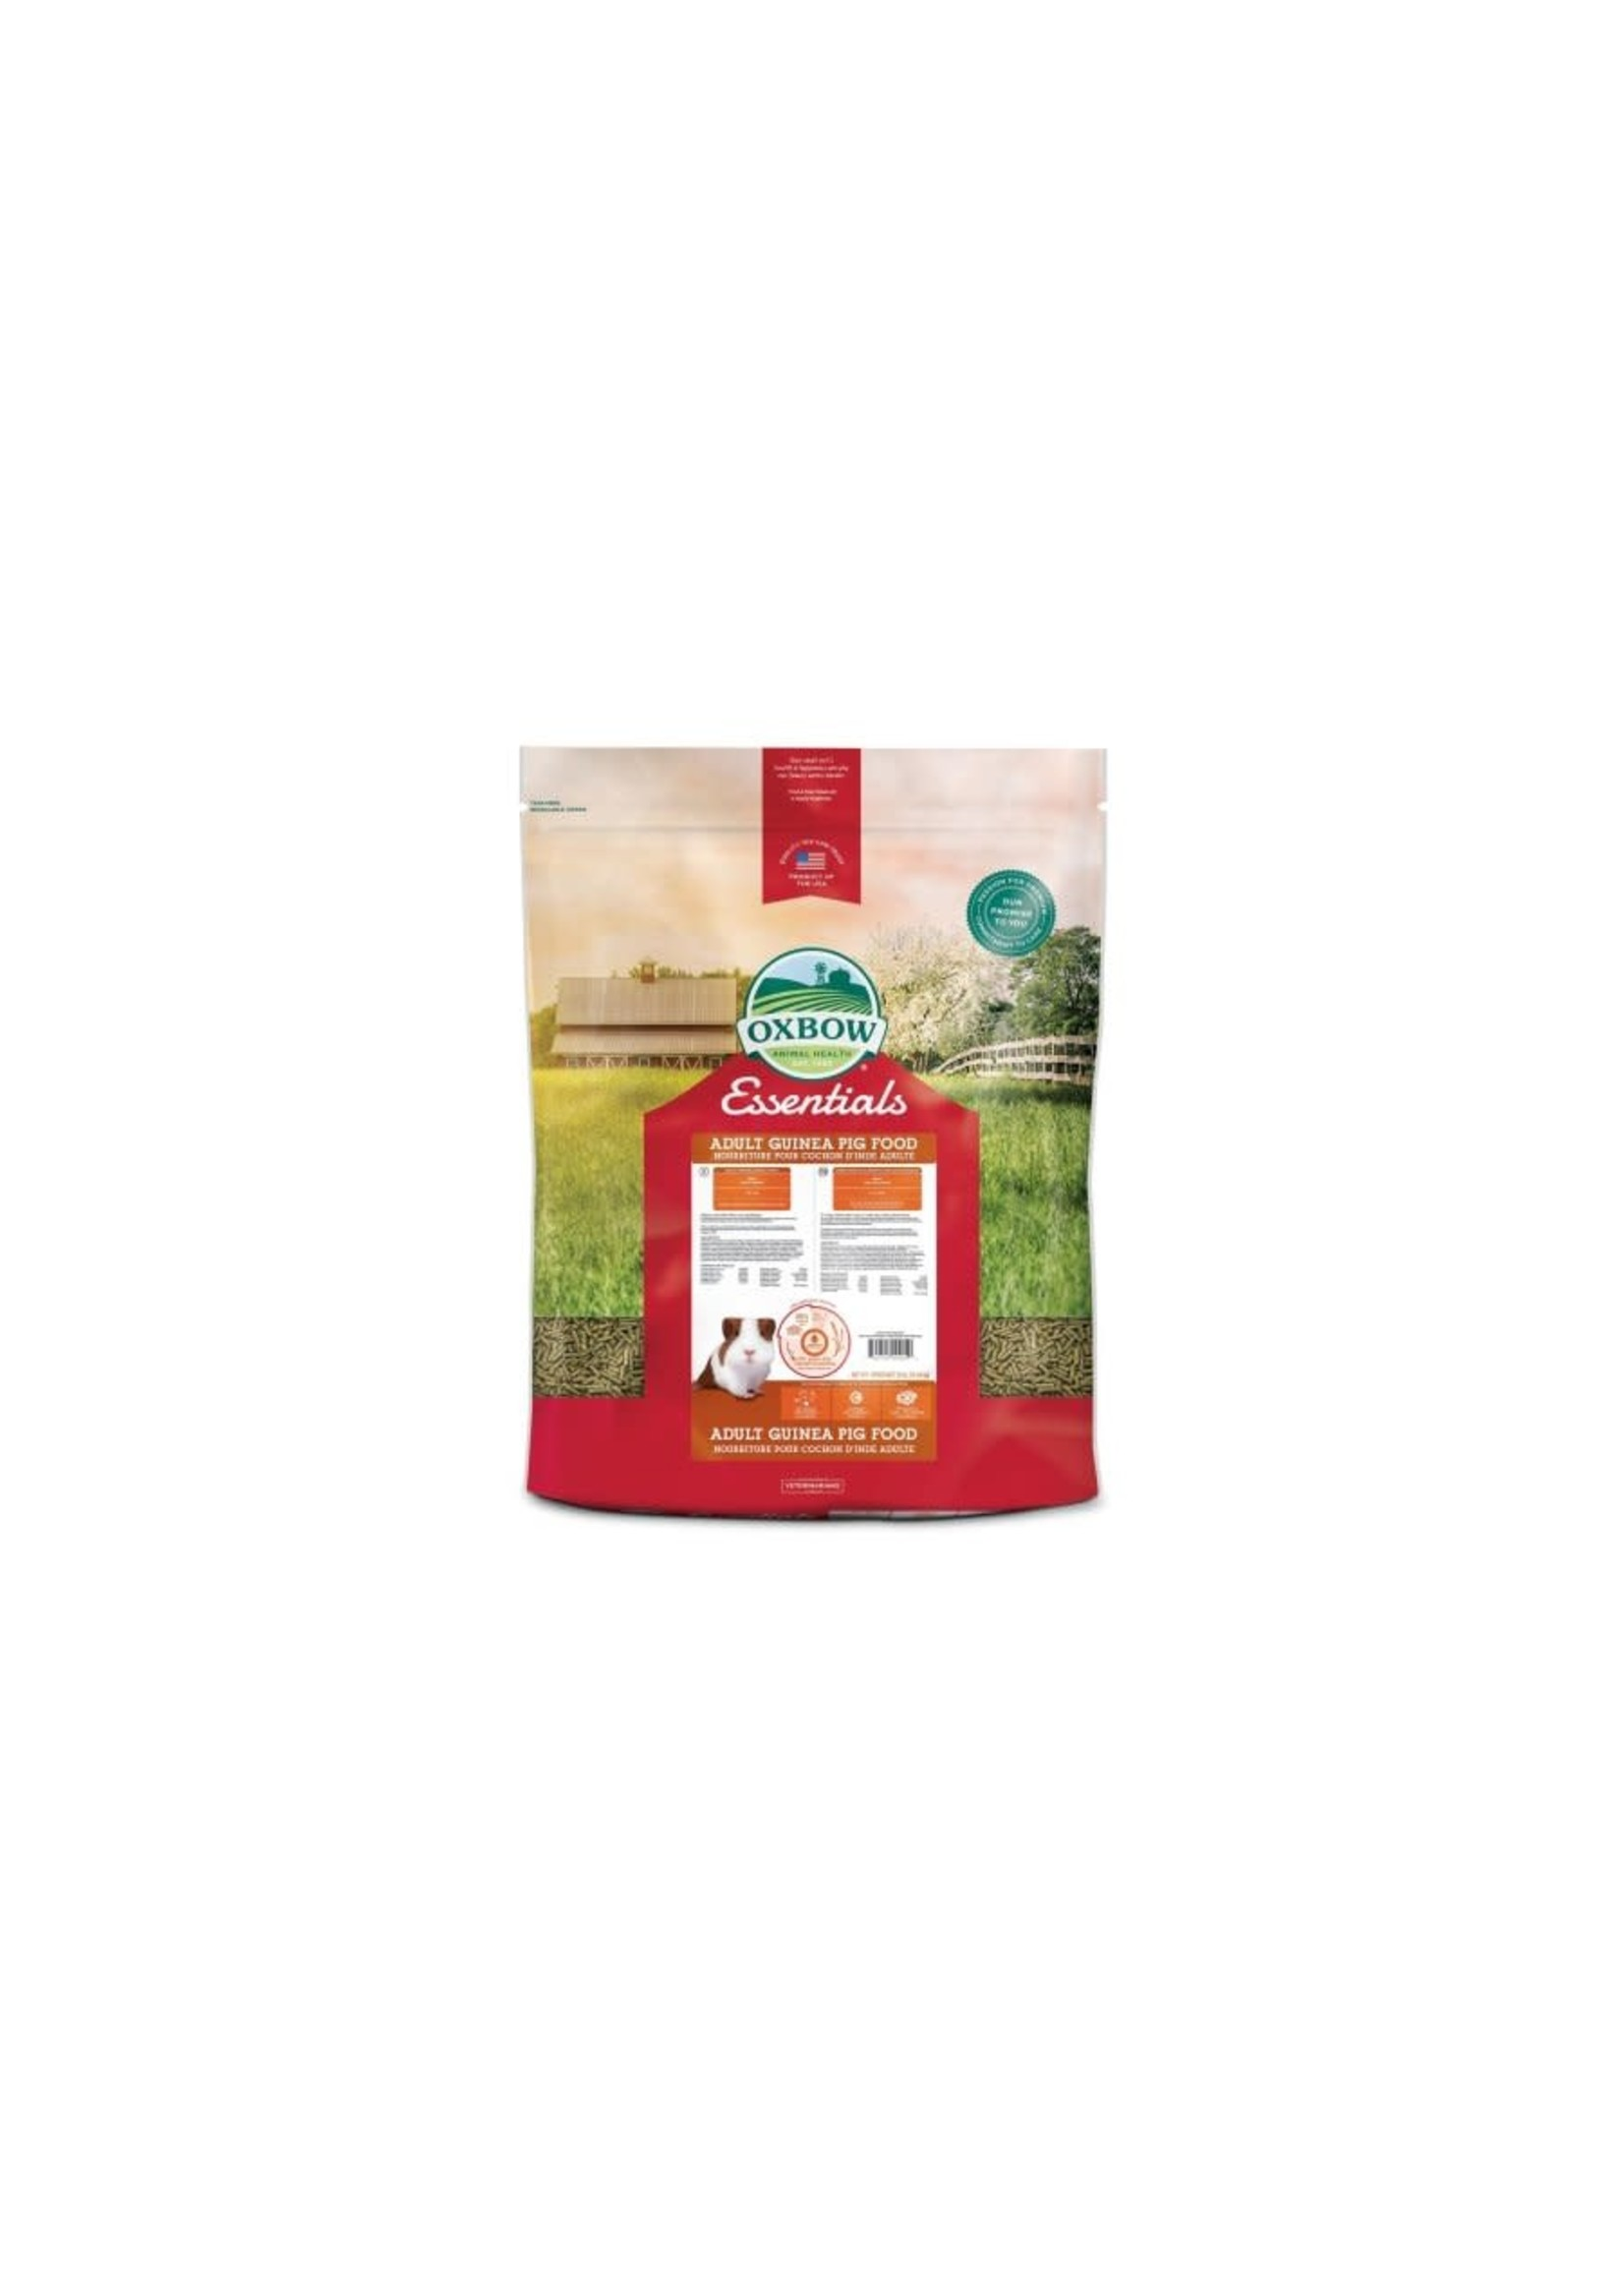 Oxbow Oxbow essentiels - Nourriture pour cochon d'Inde adulte 25 lbs